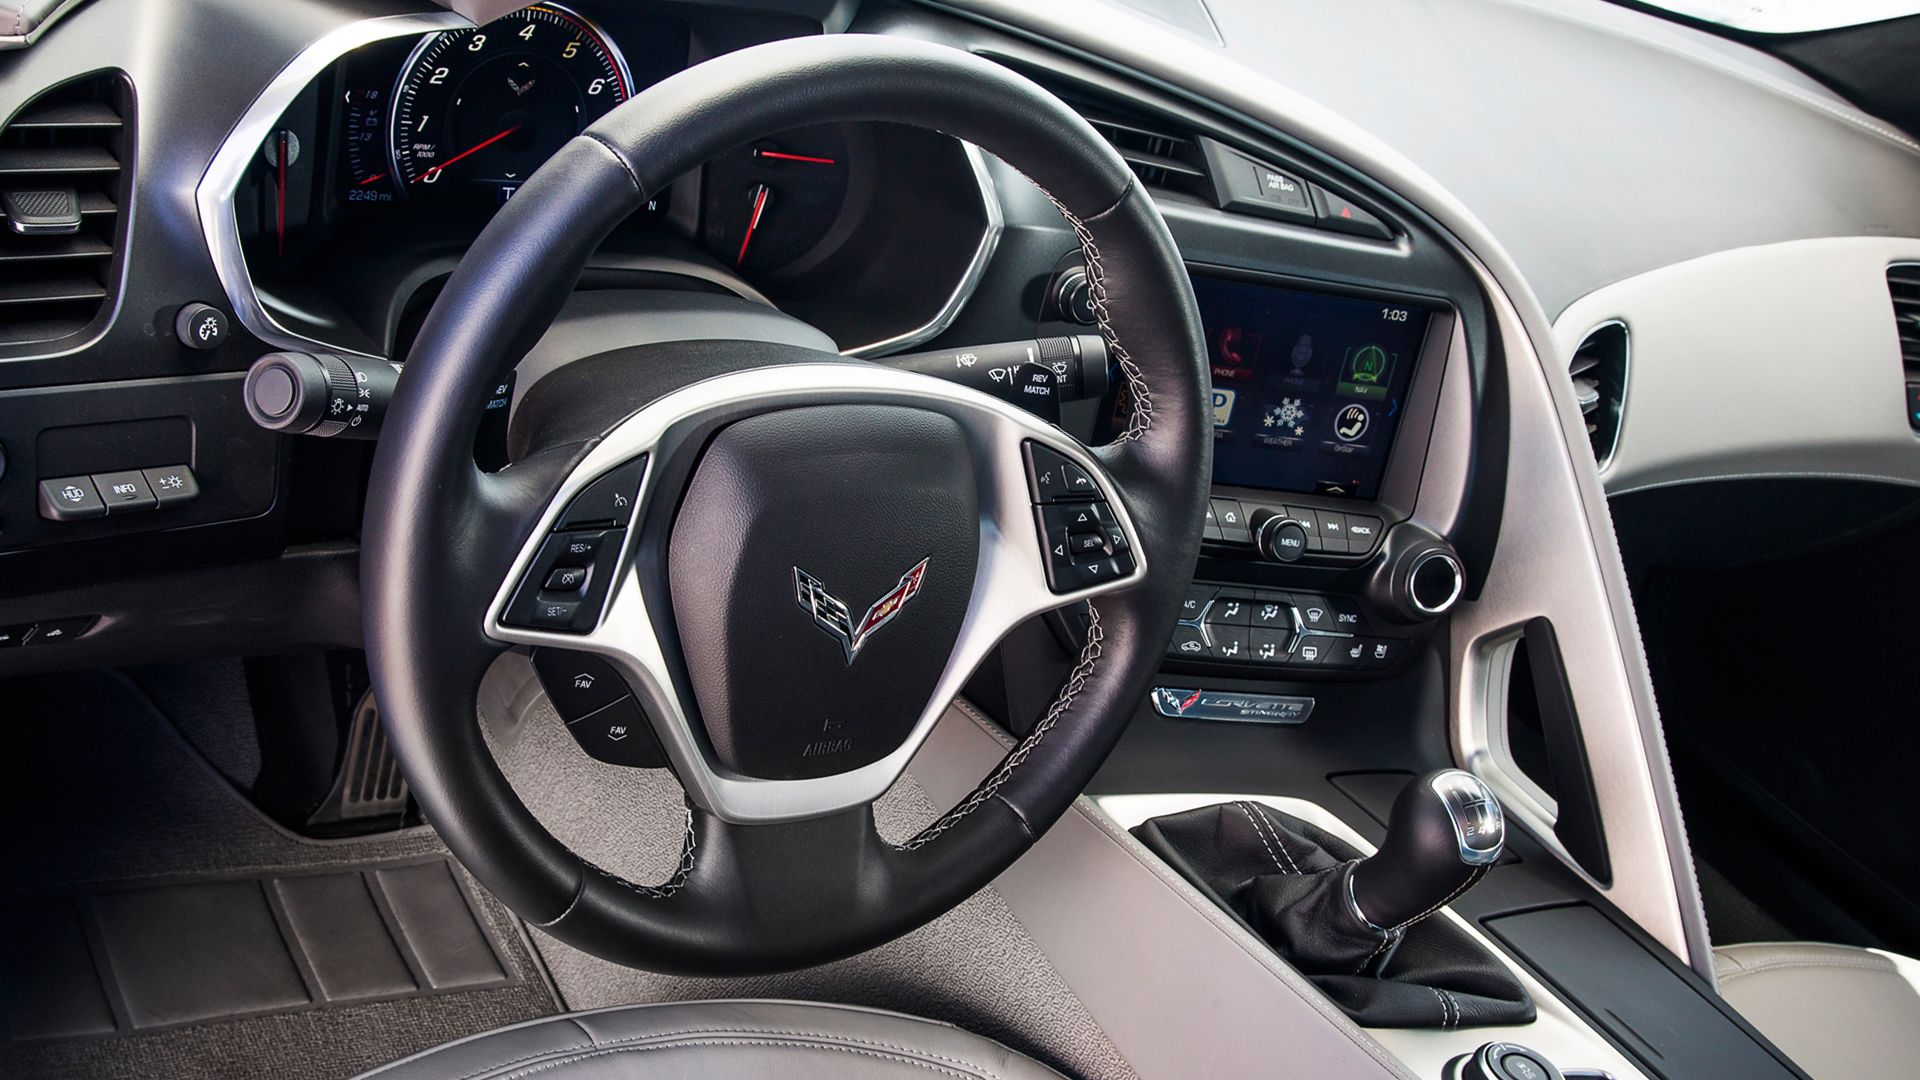 2019 Chevrolet Corvette Interior Design Corvette Car